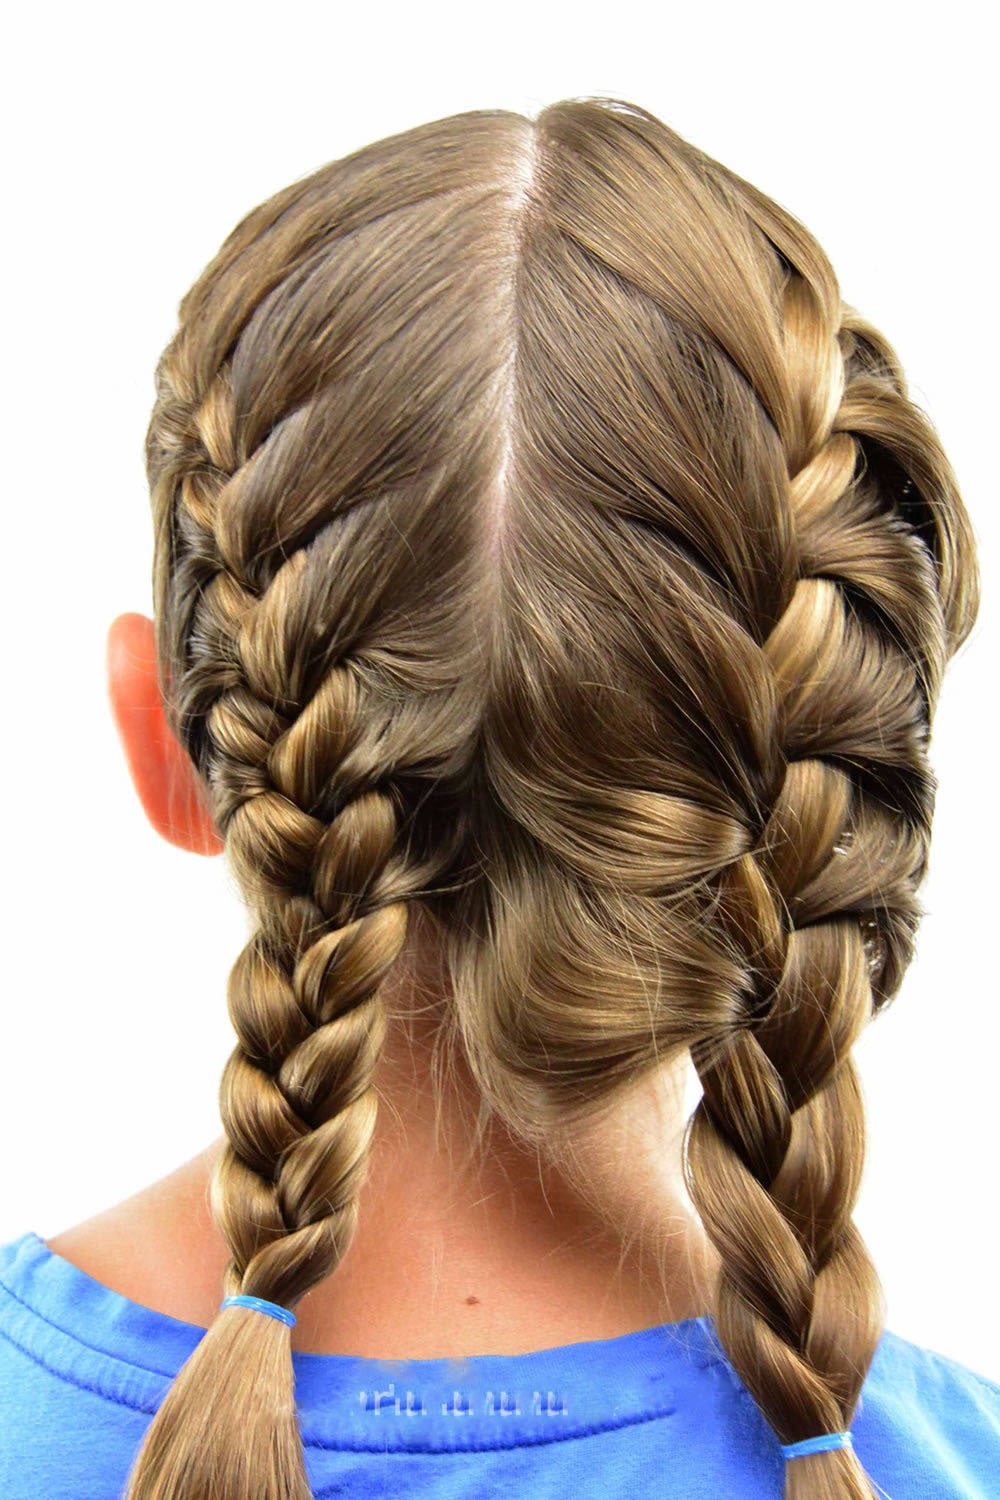 learn how to french braid your own hair